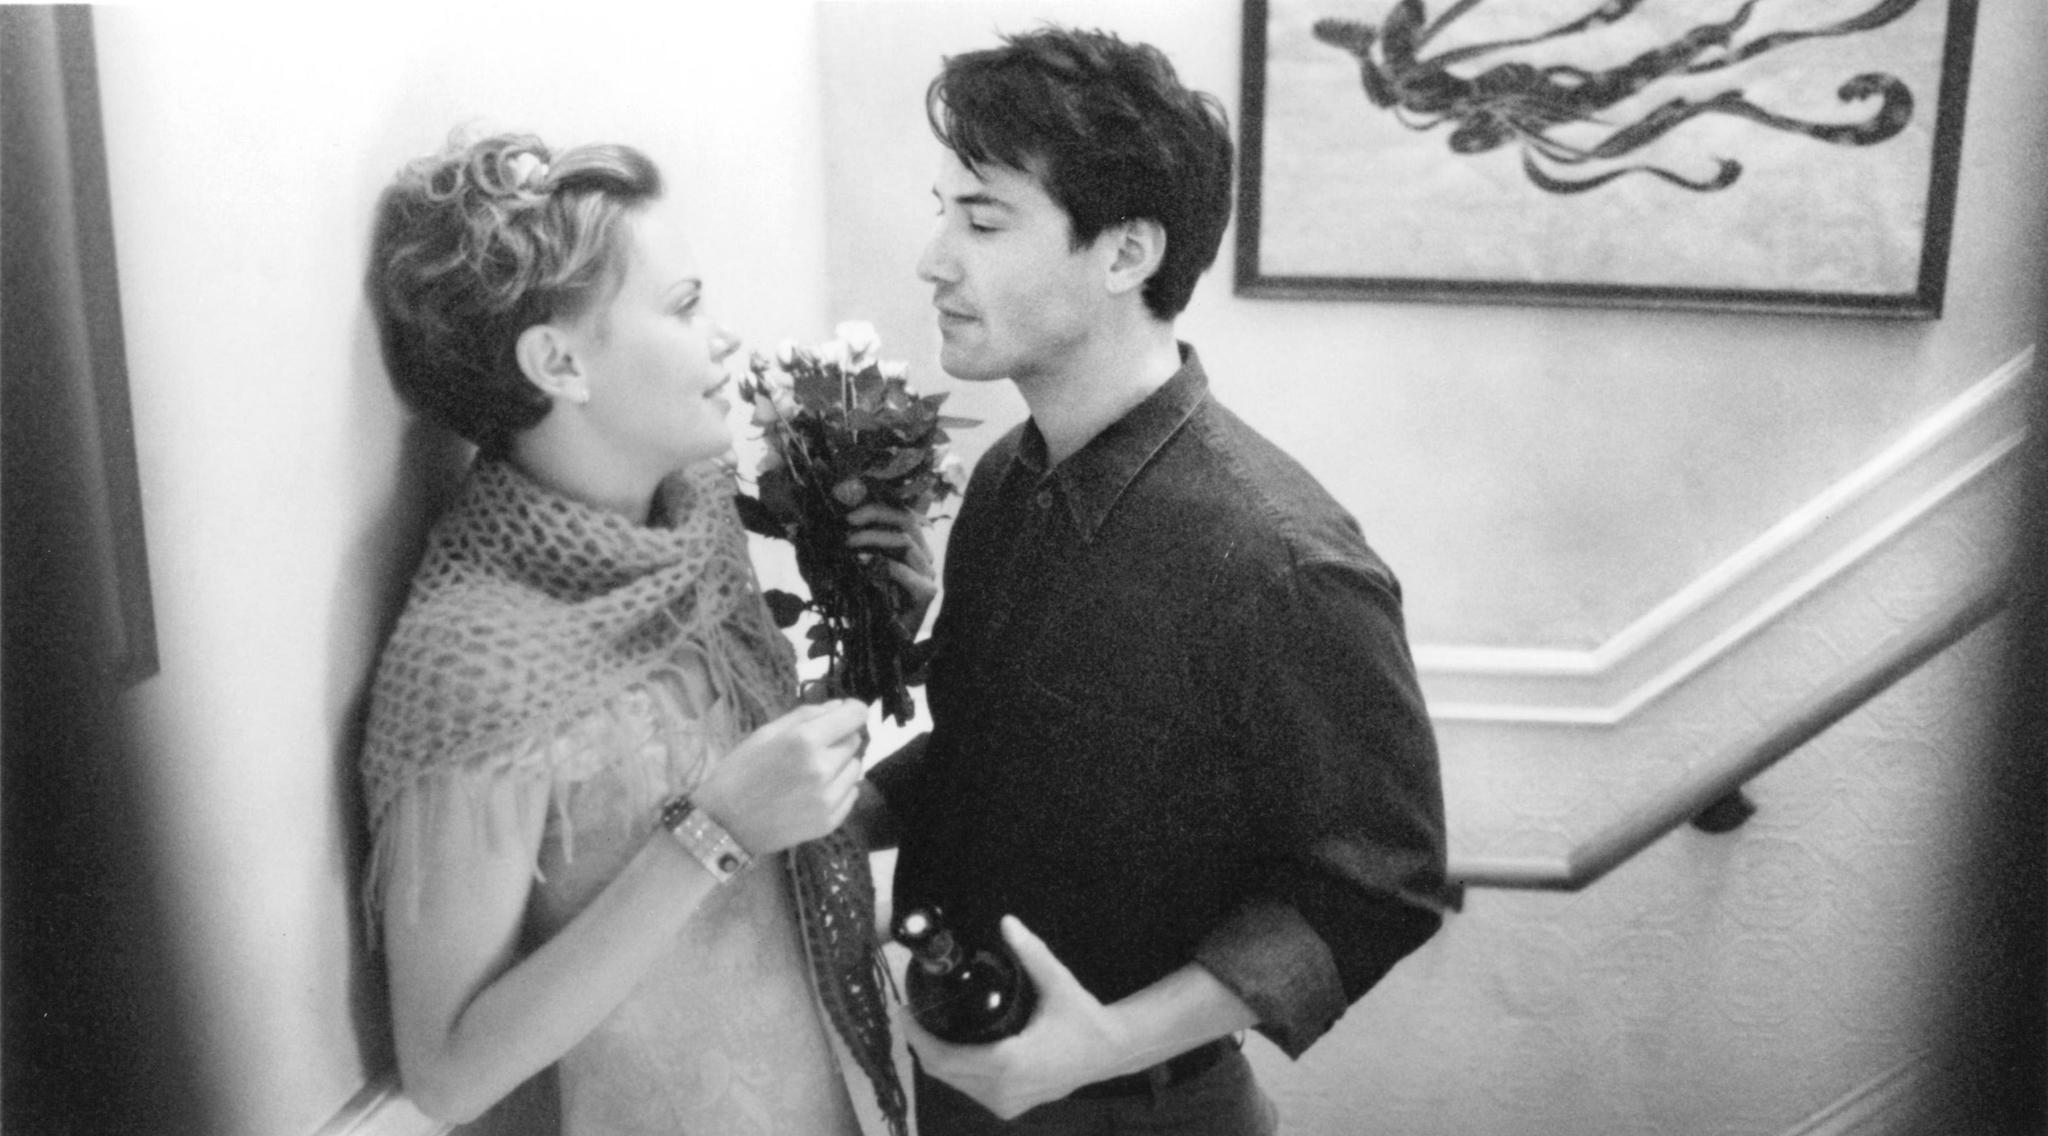 still-of-keanu-reeves-and-charlize-theron-in-sweet-november-_2001_-large-picture.jpg